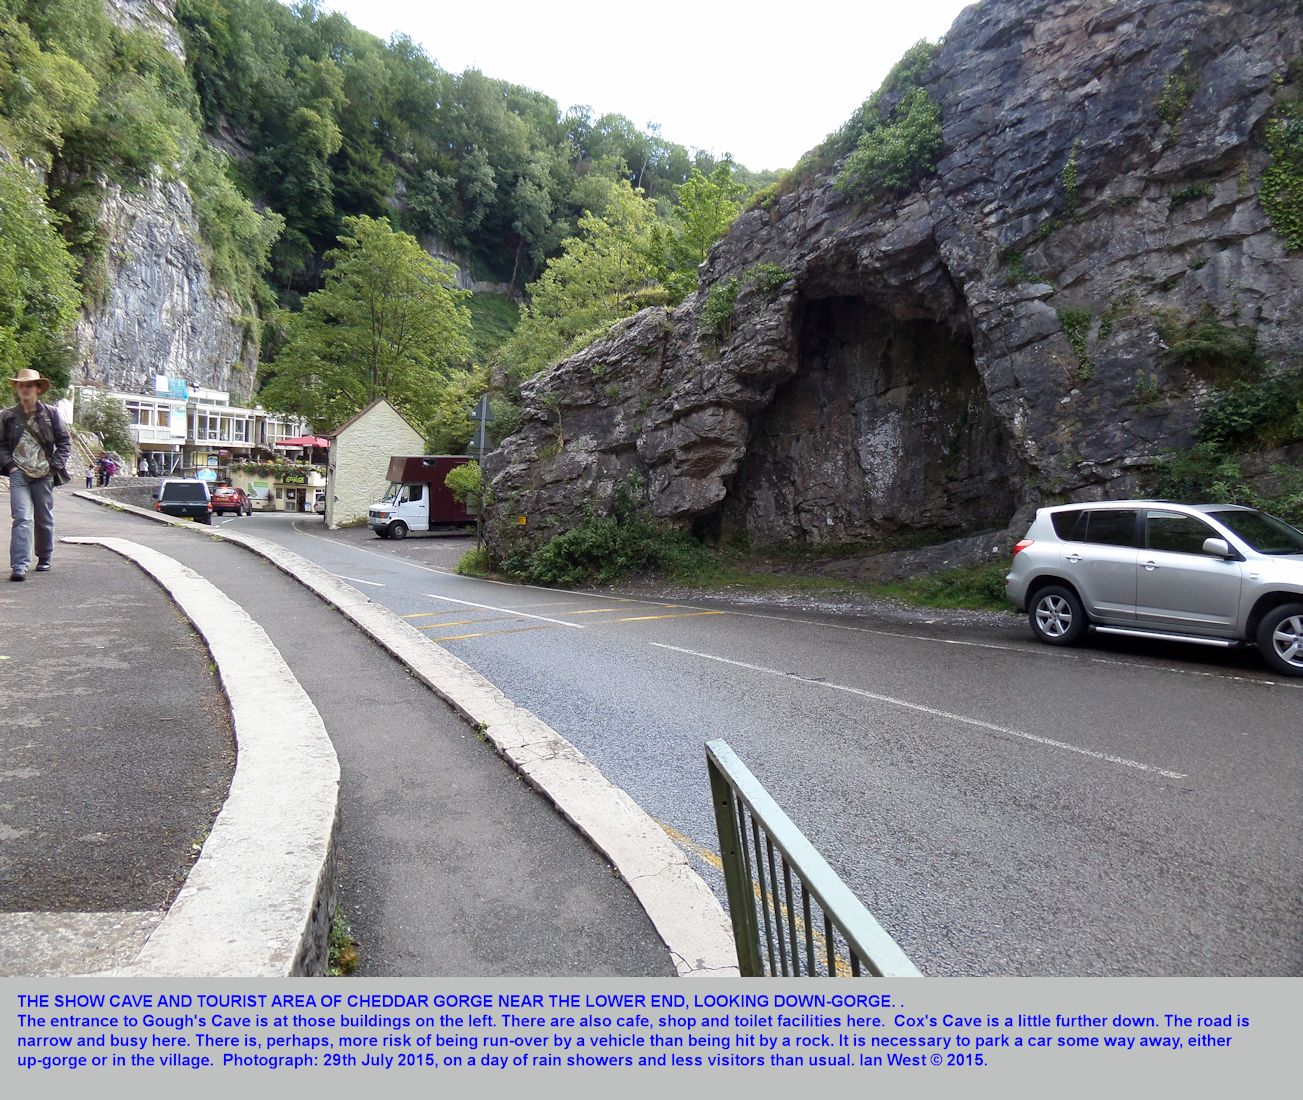 A down-gorge view to the Gough's show-caves entry area and shop and cafe at Cheddar Gorge, Mendip Hills, Somerset, 29th July 2015